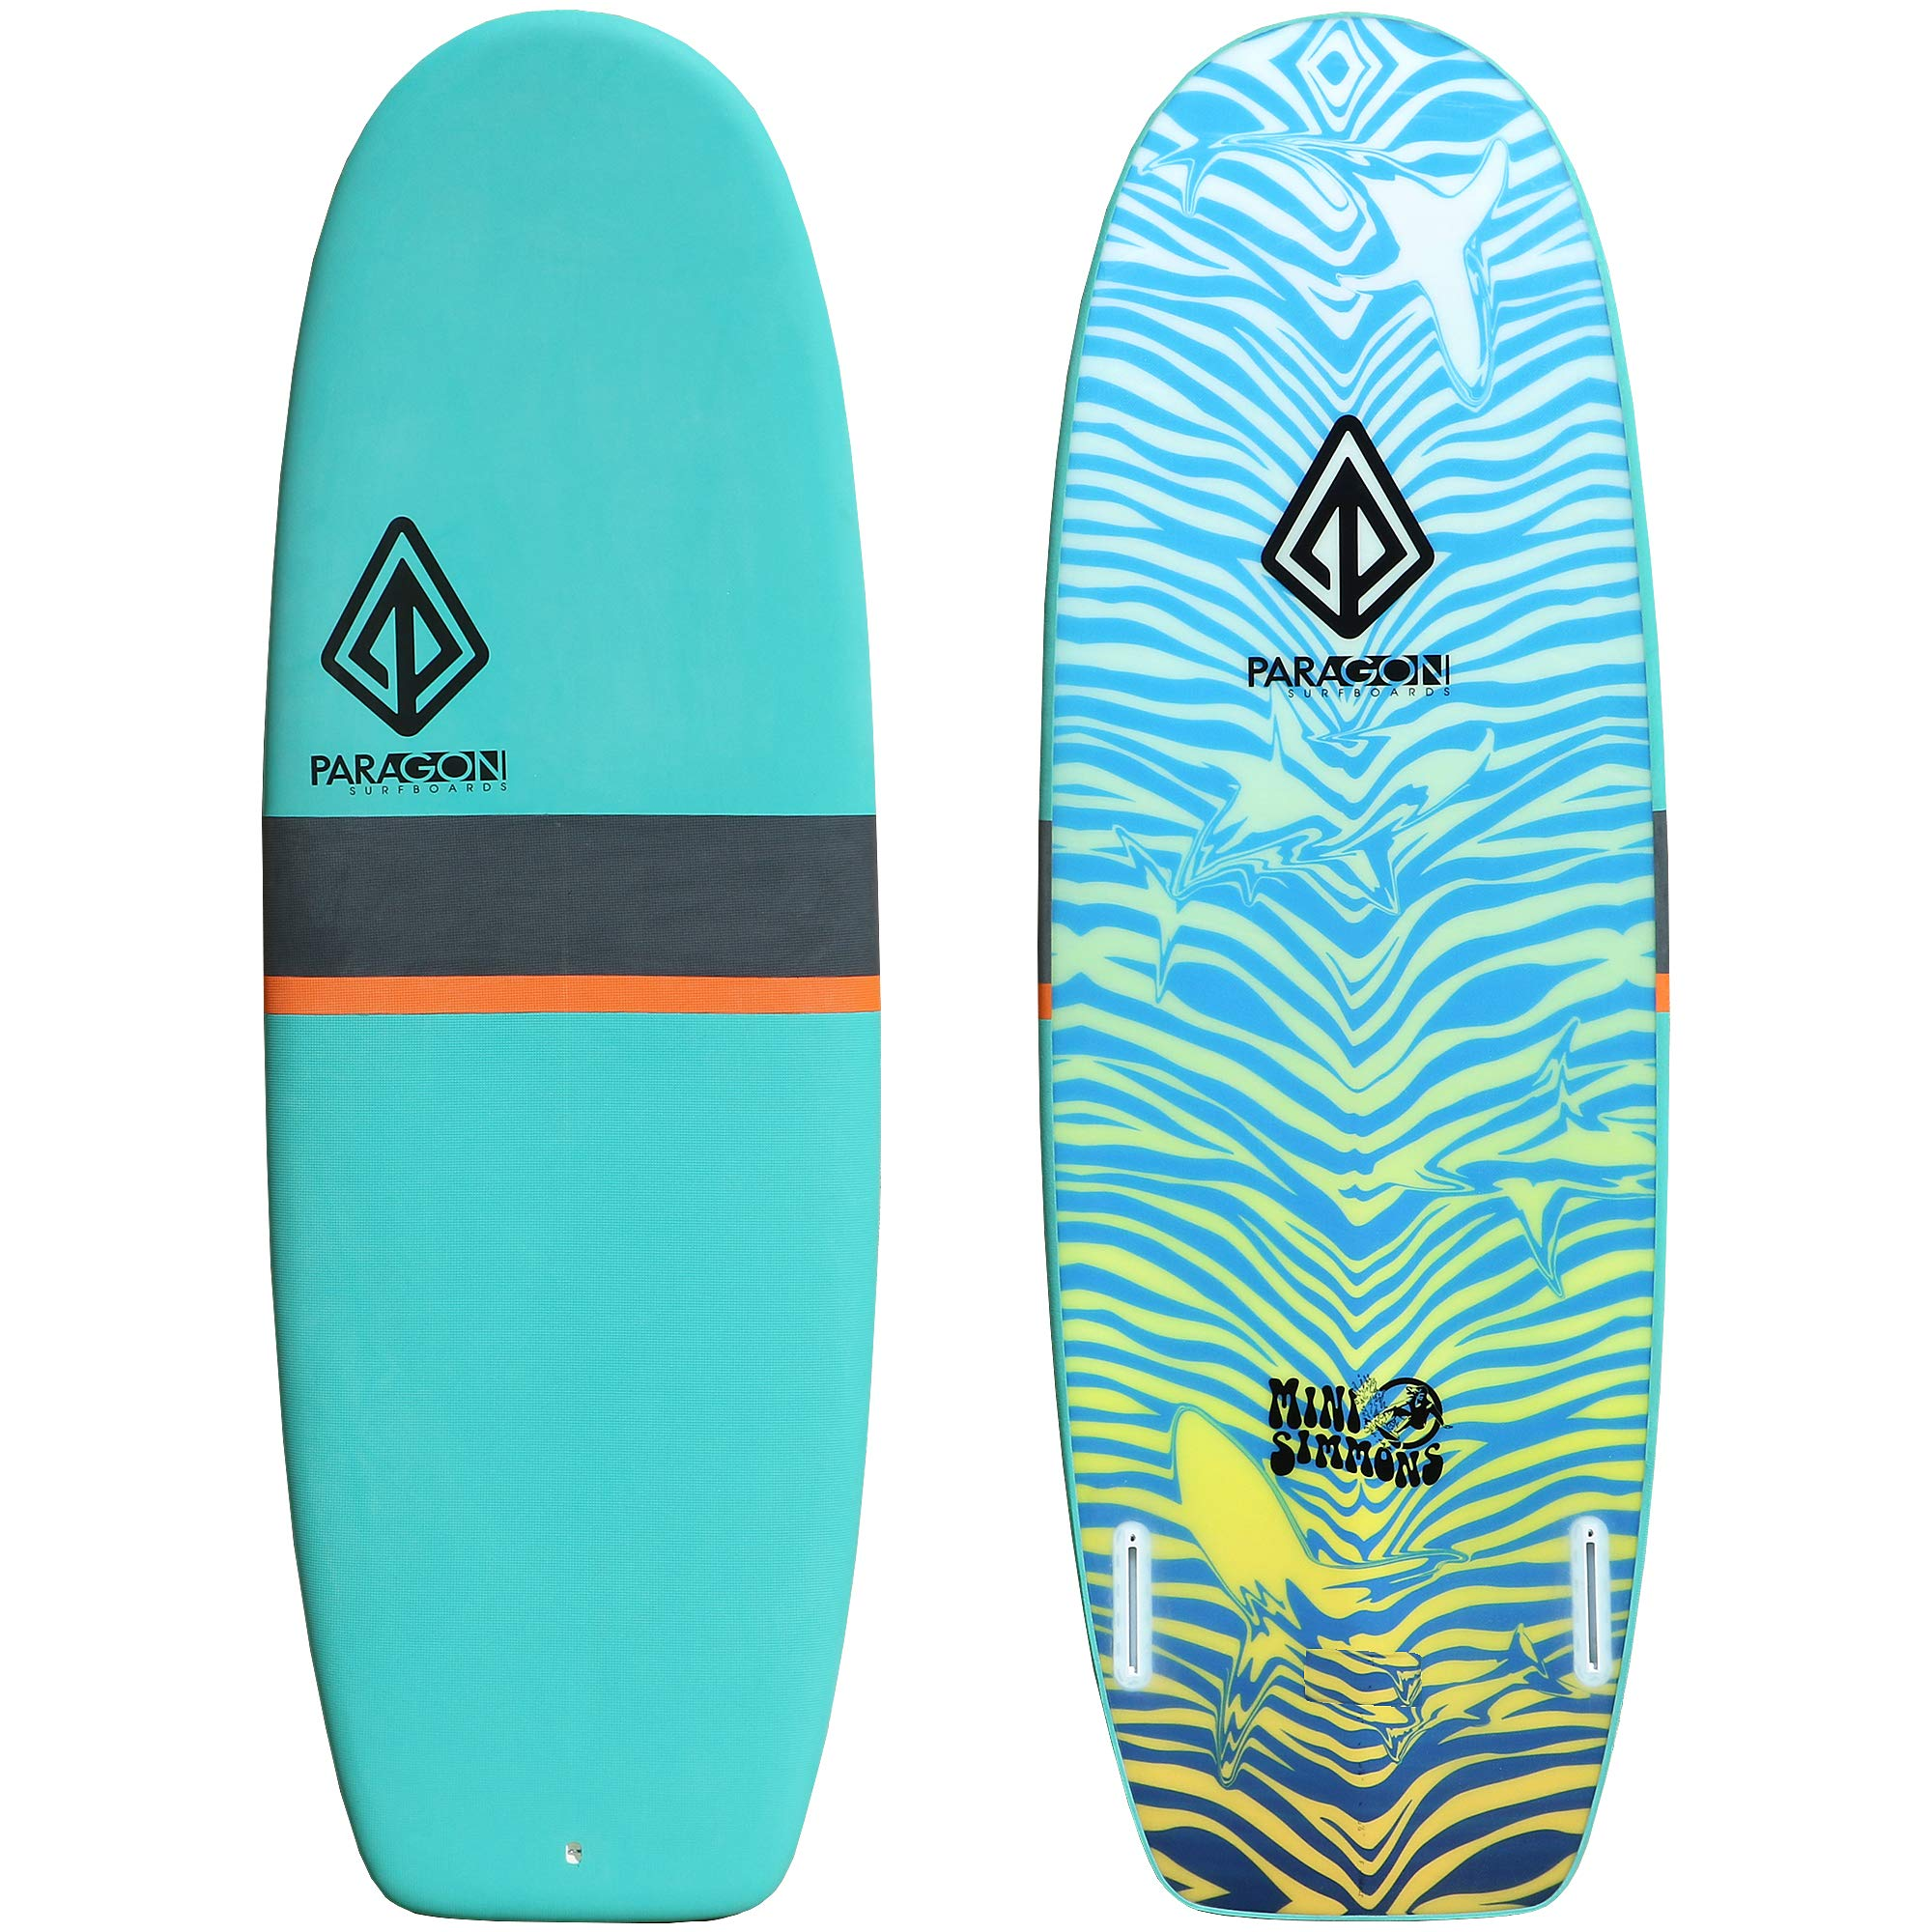 Paragon Surfboards Performance Soft-Top Surfboard